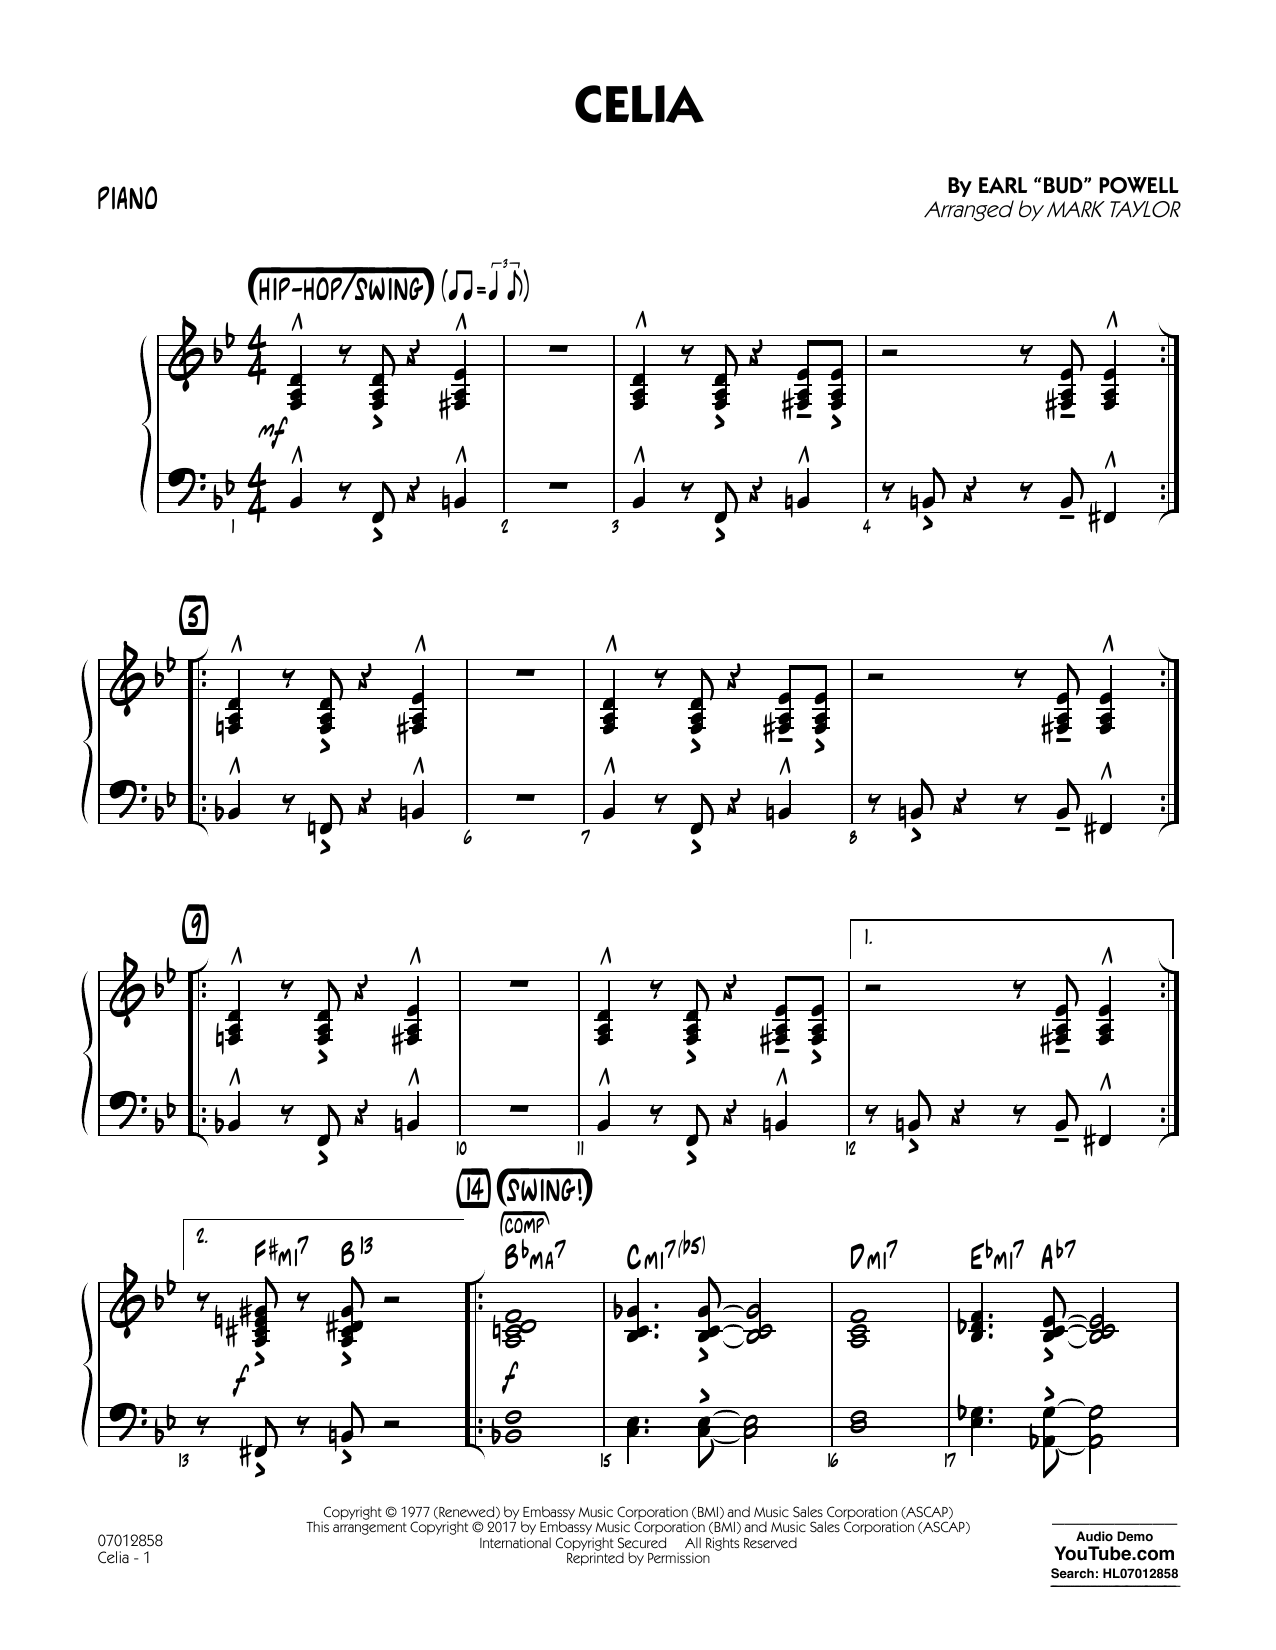 Celia - Piano Sheet Music